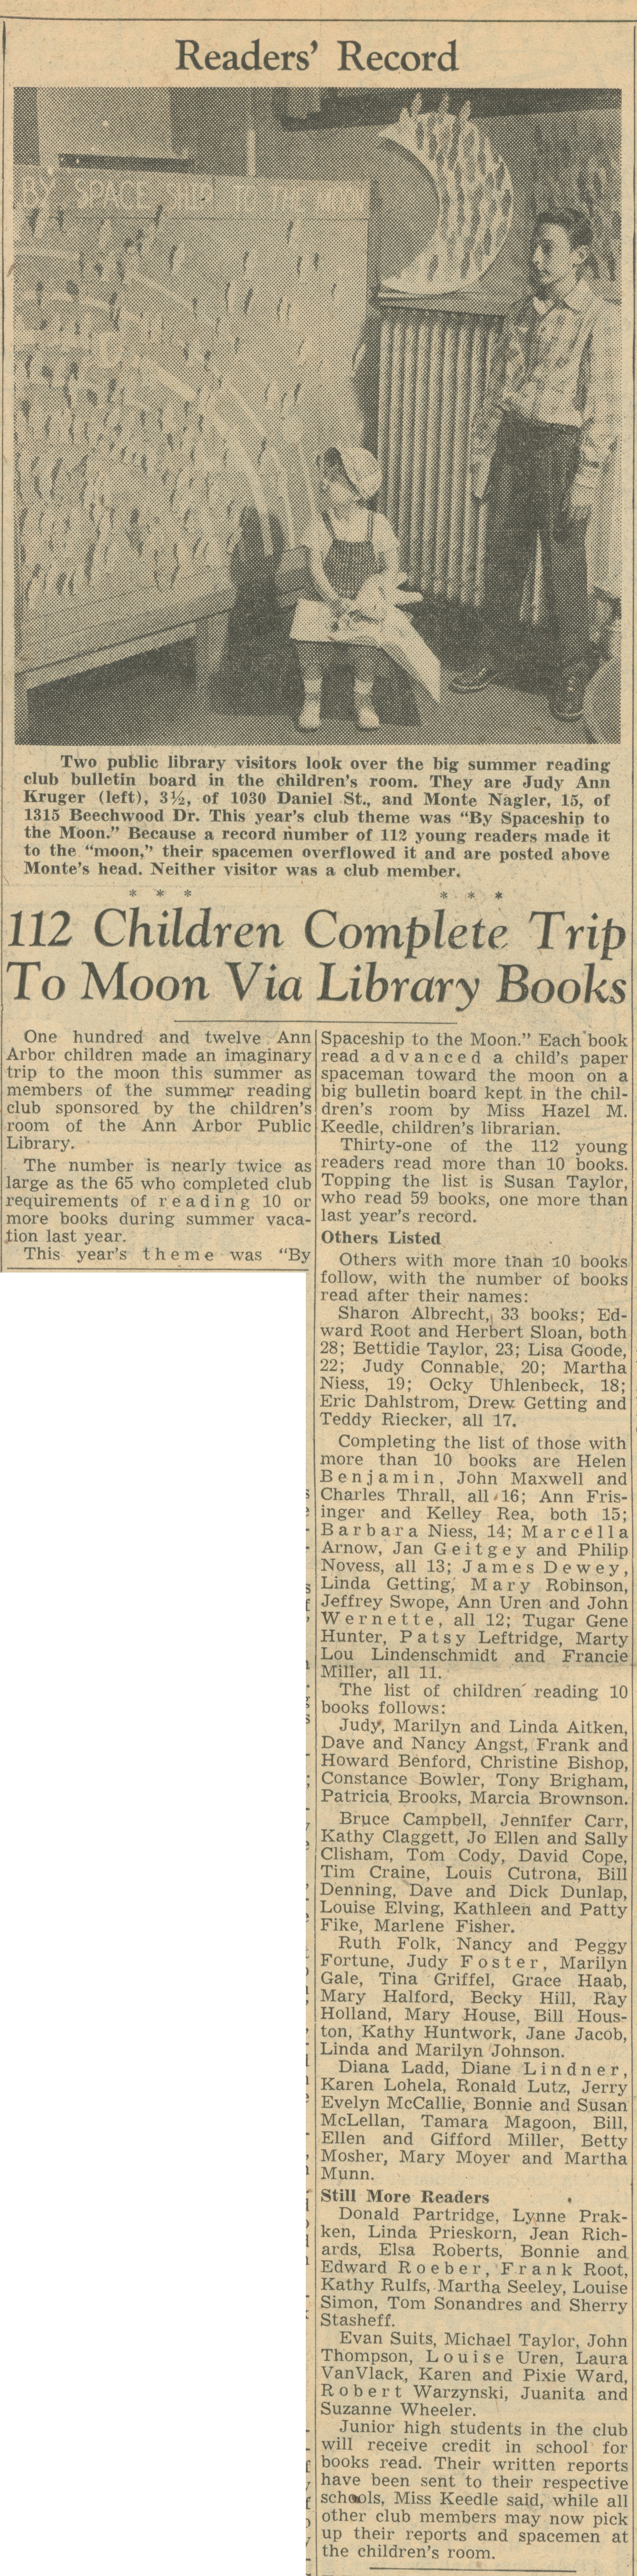 112 Children Complete Trip To Moon Via Library Books image